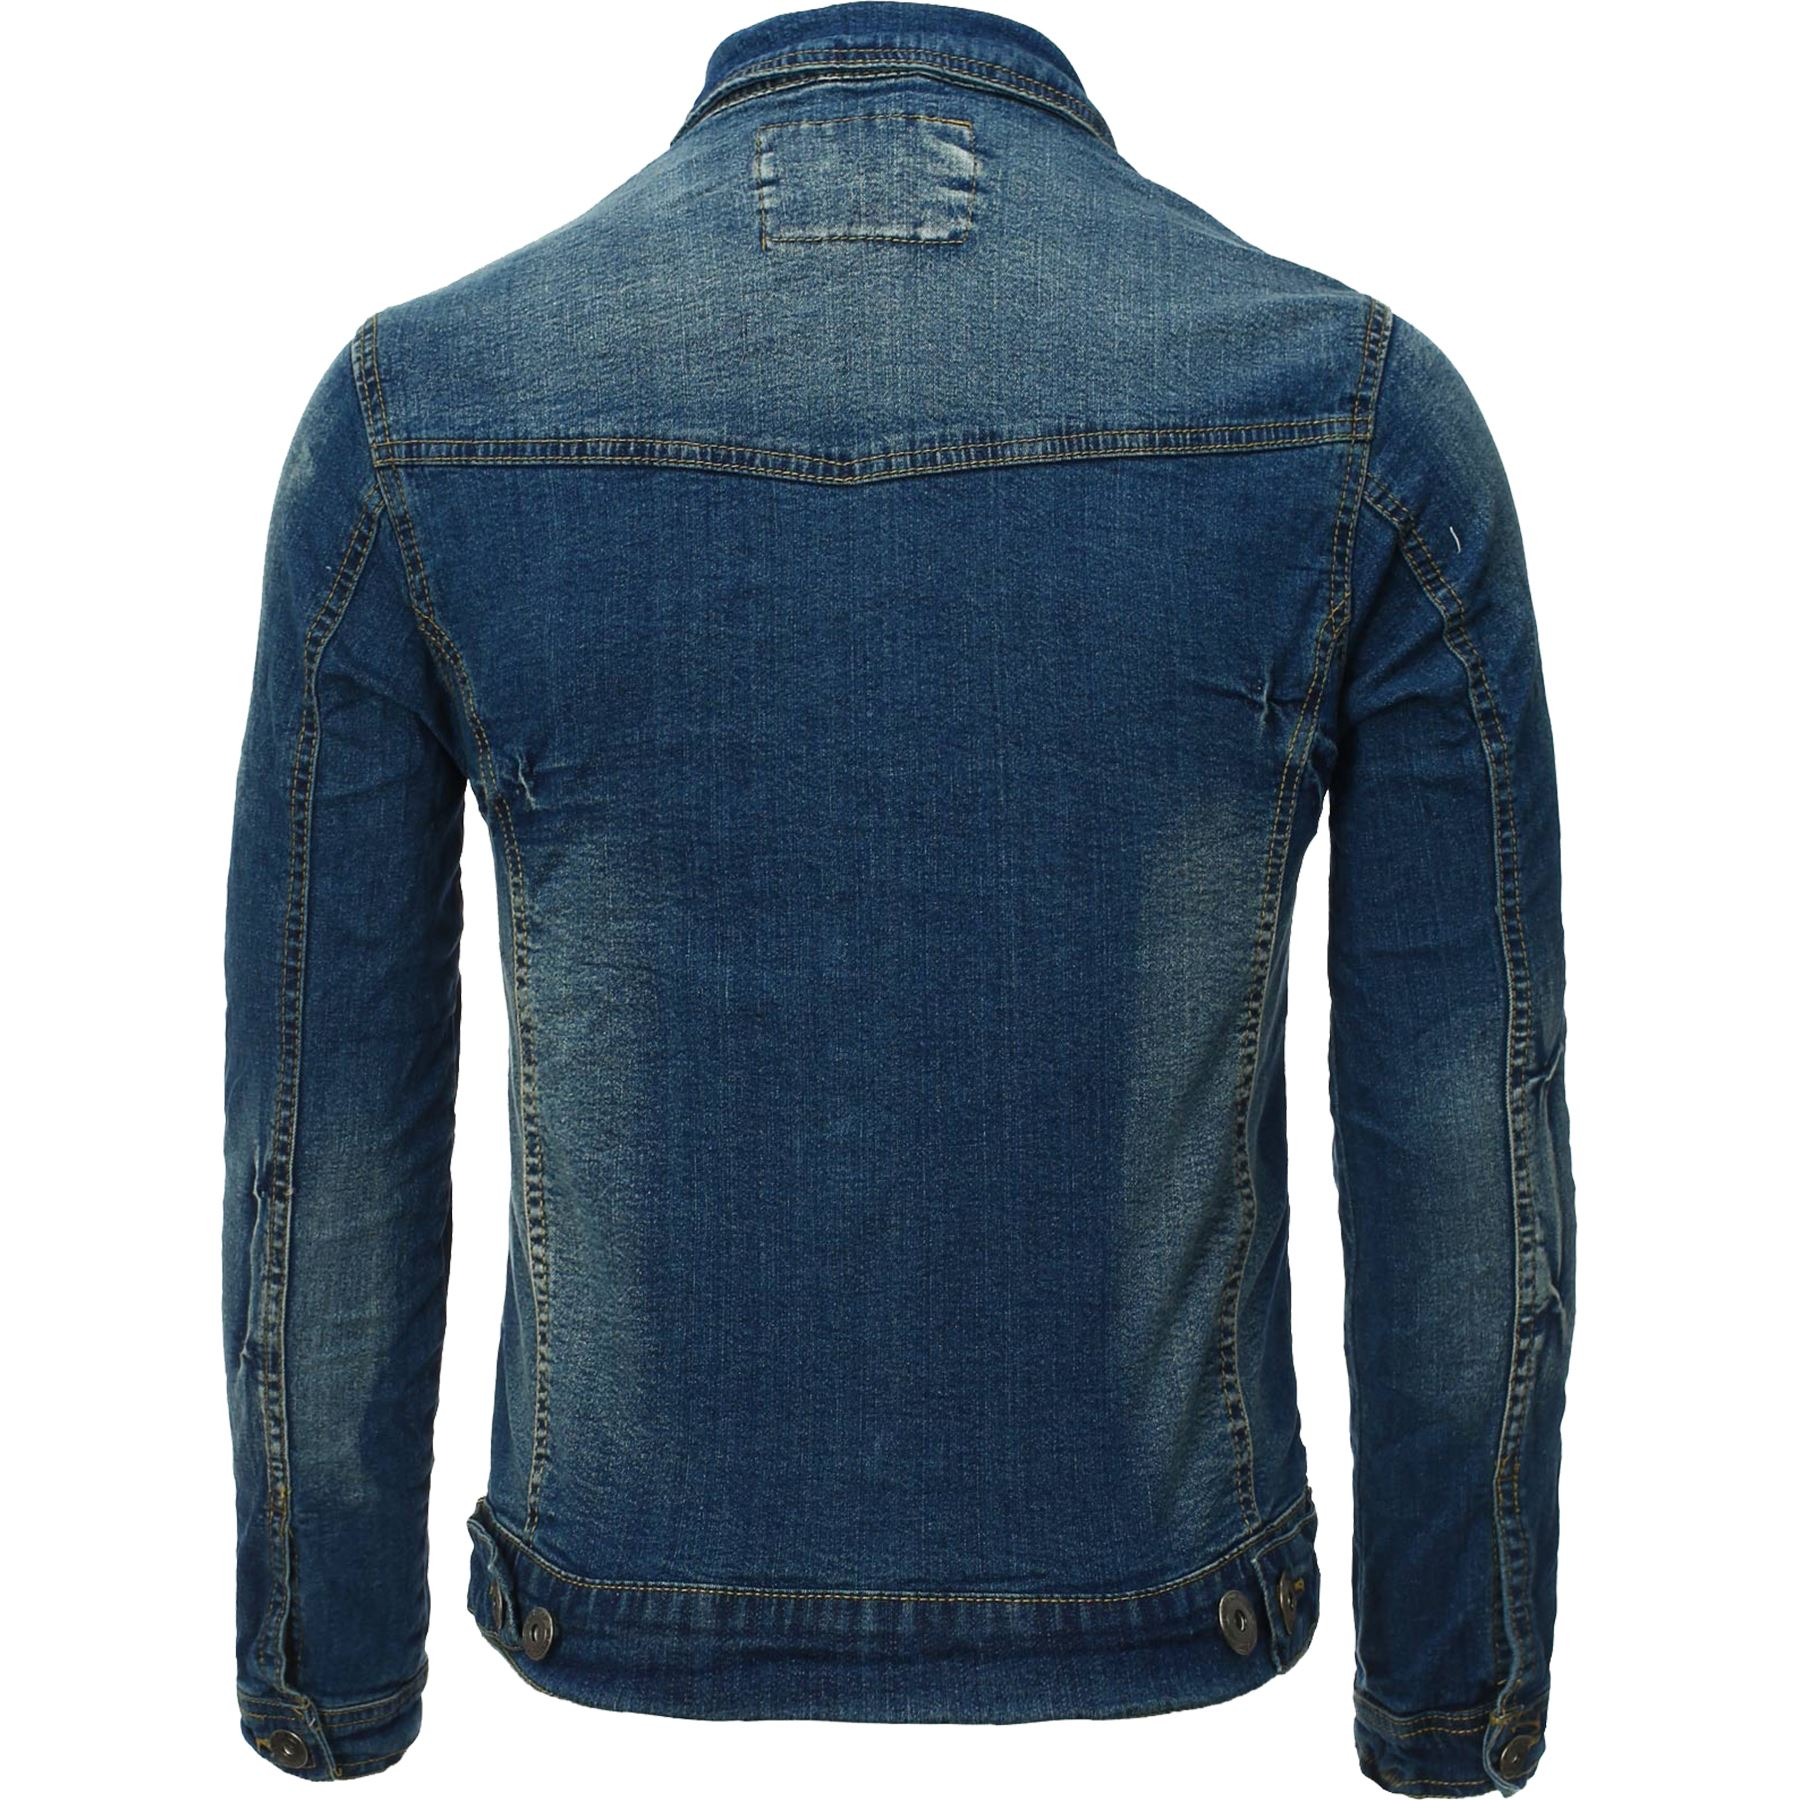 New-Mens-Denim-Jacket-Ex-Highstreet-Classic-Vintage-Distressed-Style-Trucker thumbnail 3